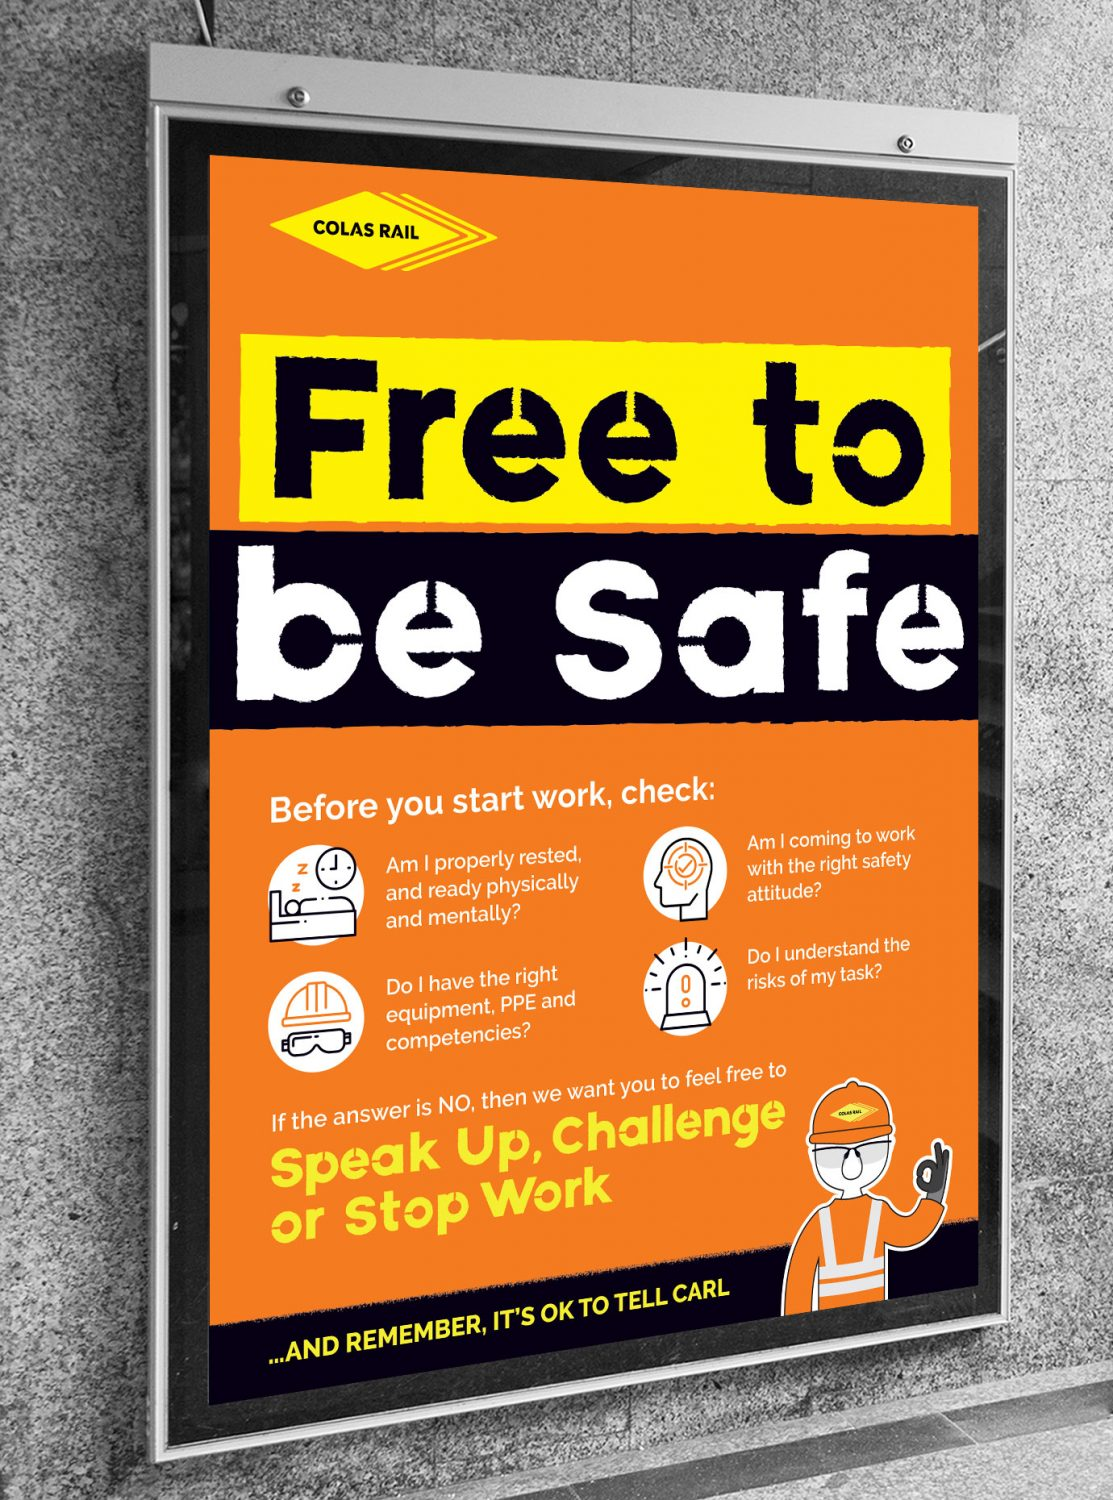 Colas Rail free to be safe poster from case study